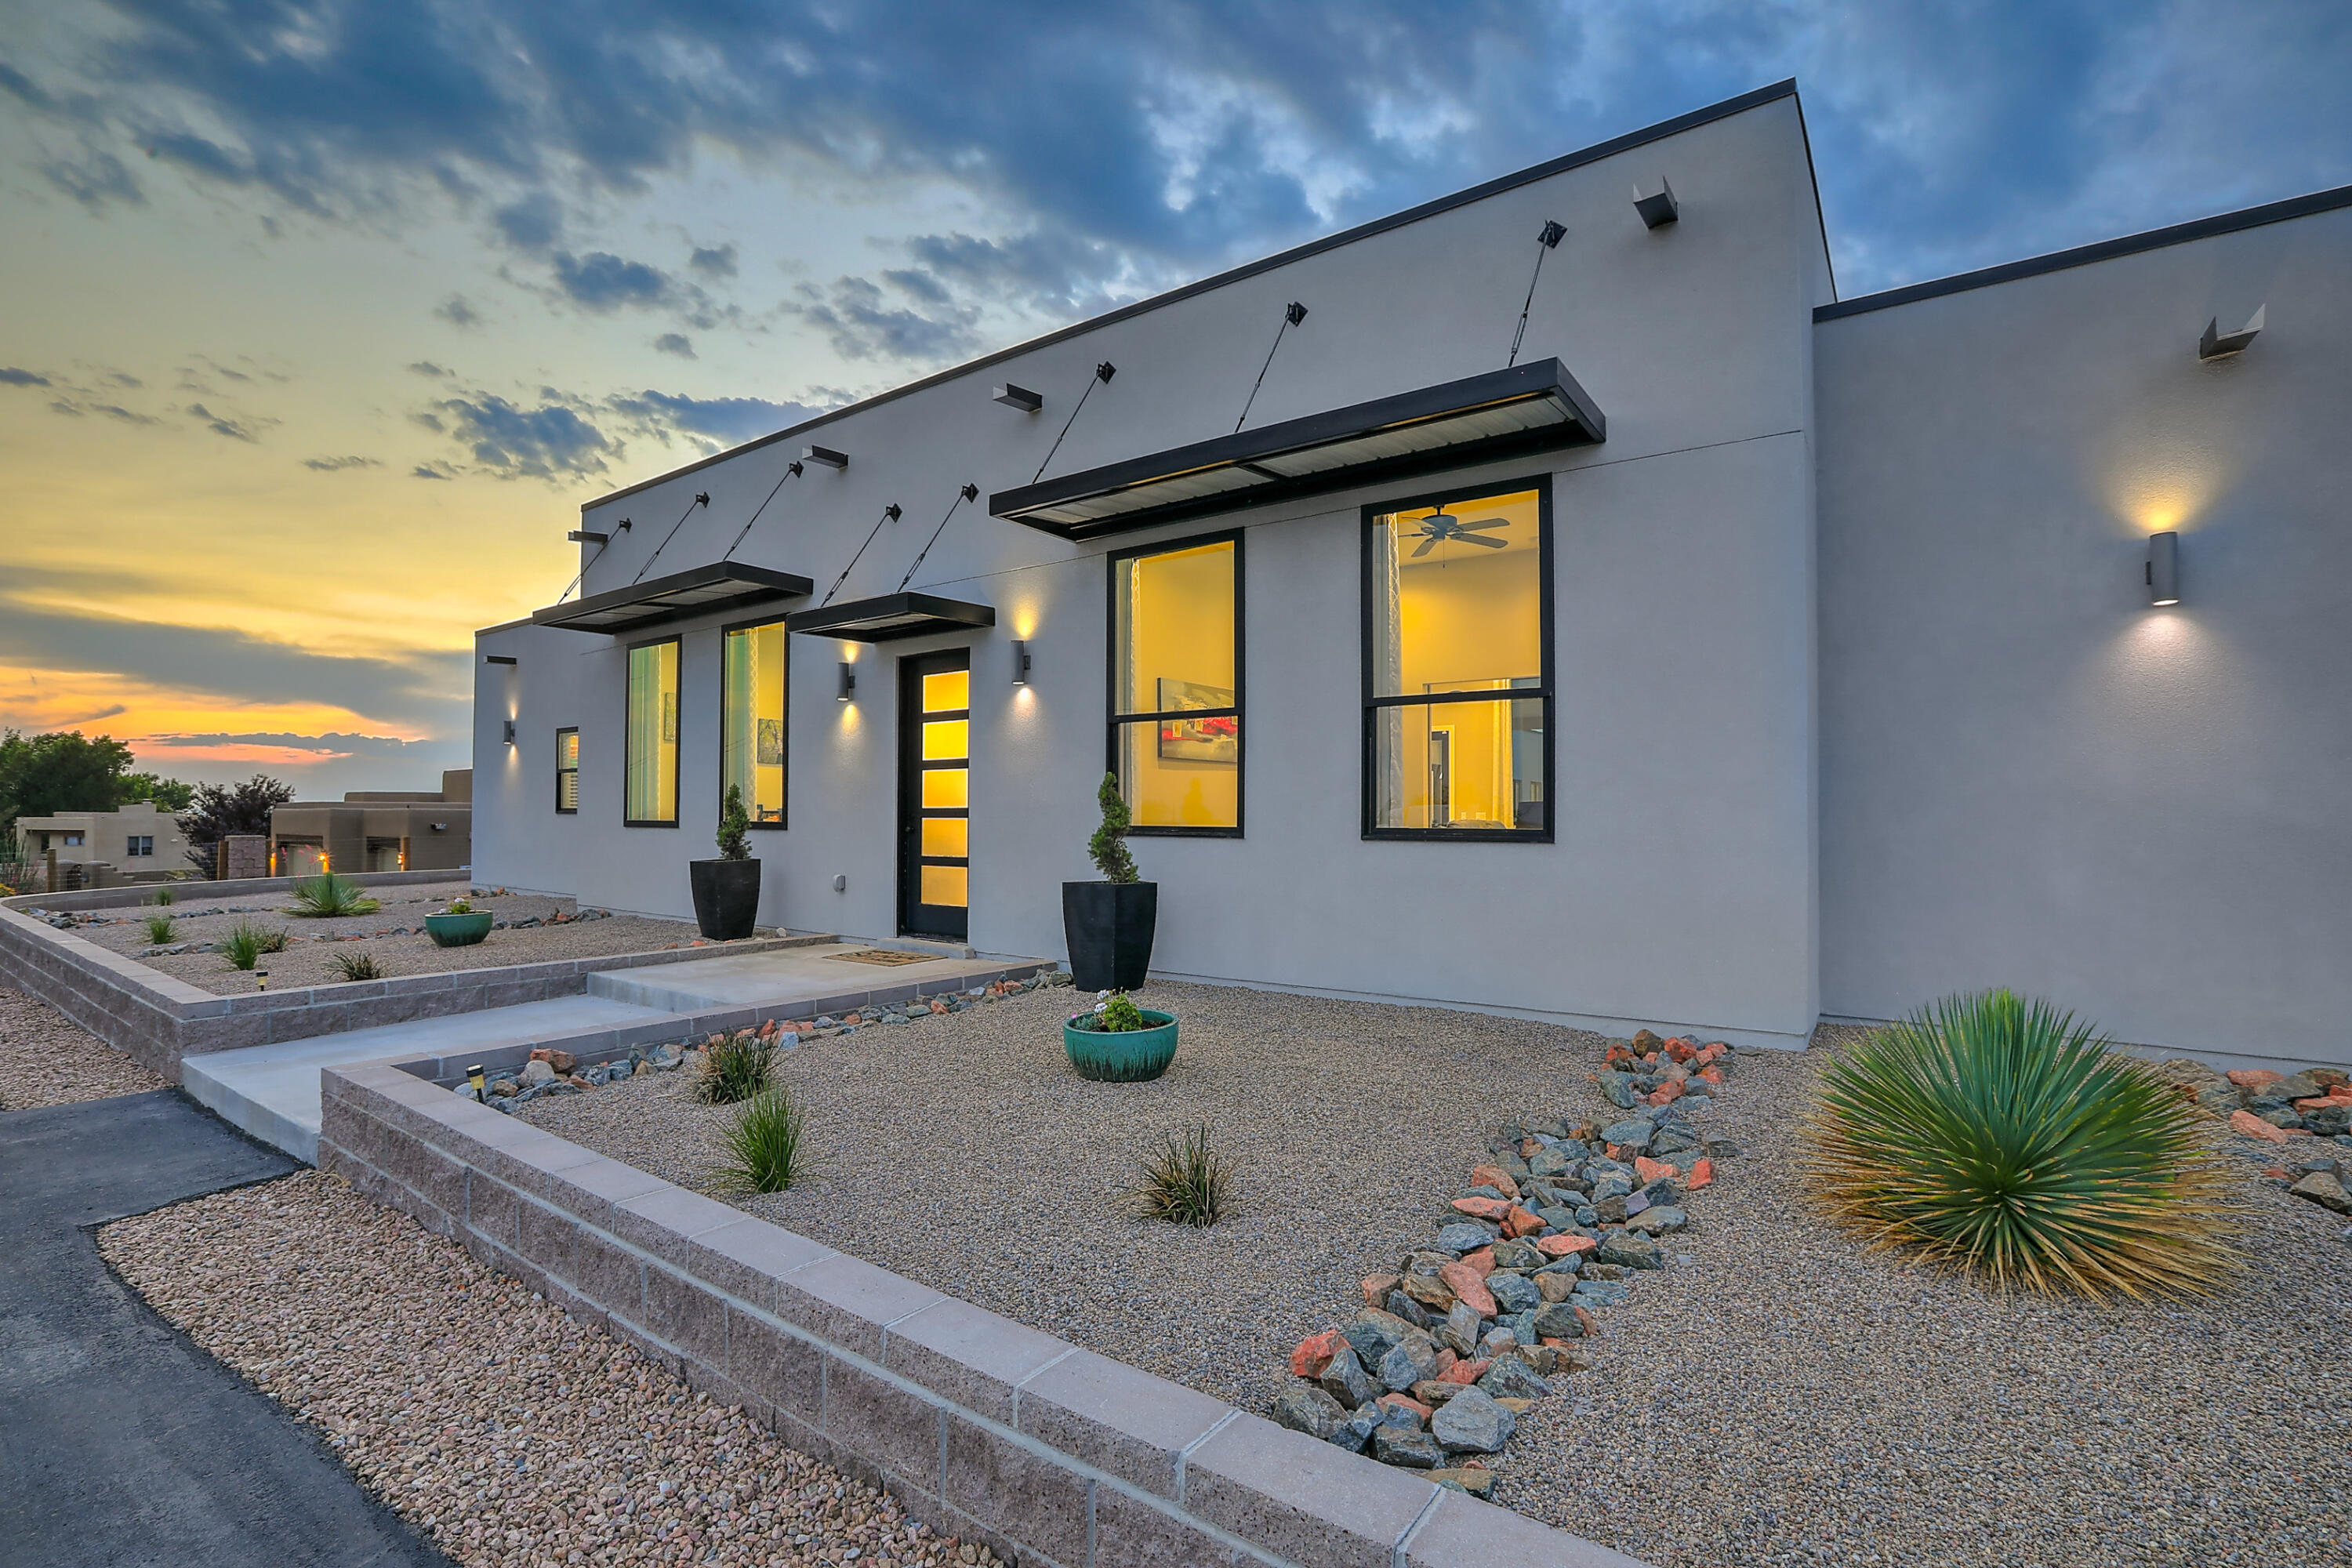 This thoughtfully designed contemporary custom home was built in 2019.  You'll enjoy the light and bright floor plan which boasts the master suite, 2 other bedrooms, an office, a large theater room, an oversized 4 car garage AND an attached casita with a separate entrance, kitchen, and bathroom.  In the gourmet Kitchen you'll find luxury amenities like an oversized granite island with bar seating, custom cabinetry, double stove and ovens with 10 gas burners, oversized stainless steel refrigerator and freezer and an open concept. In the master there are 2 large walk in closets, double sinks, separate tub, and a custom tile designed walk in shower. The plush backyard has a covered patio with tile flooring, grass, a dog run, and a refreshing pool with incredible views of the Sandia Mountains!